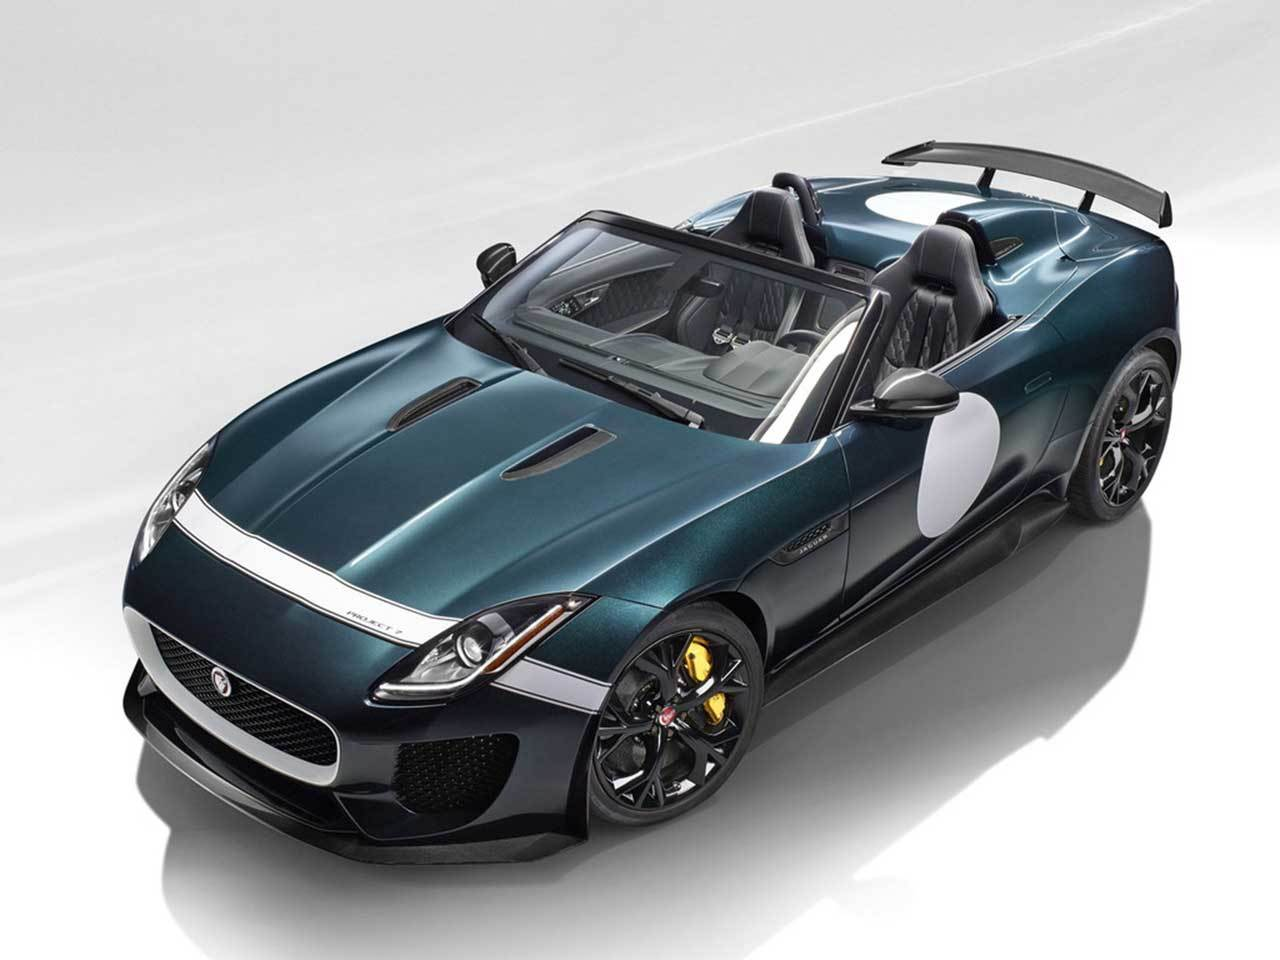 jaguar f type project 7 set for limited production with 567bhp it will be the quickest jaguar. Black Bedroom Furniture Sets. Home Design Ideas